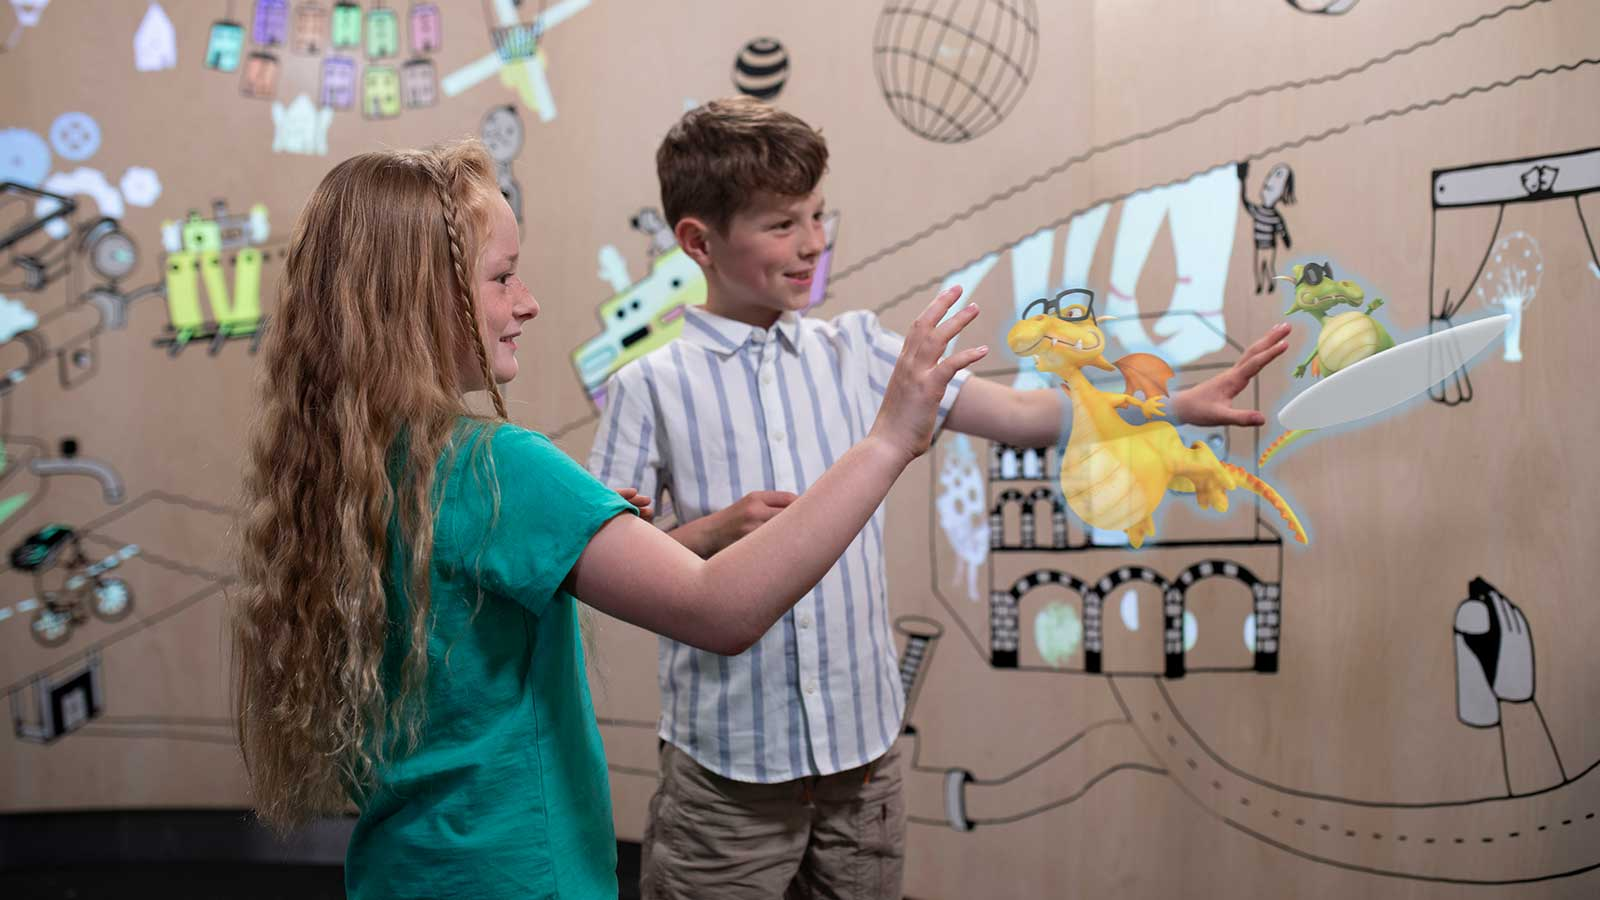 Children playing with virtual 3D dragons, spatial computing example